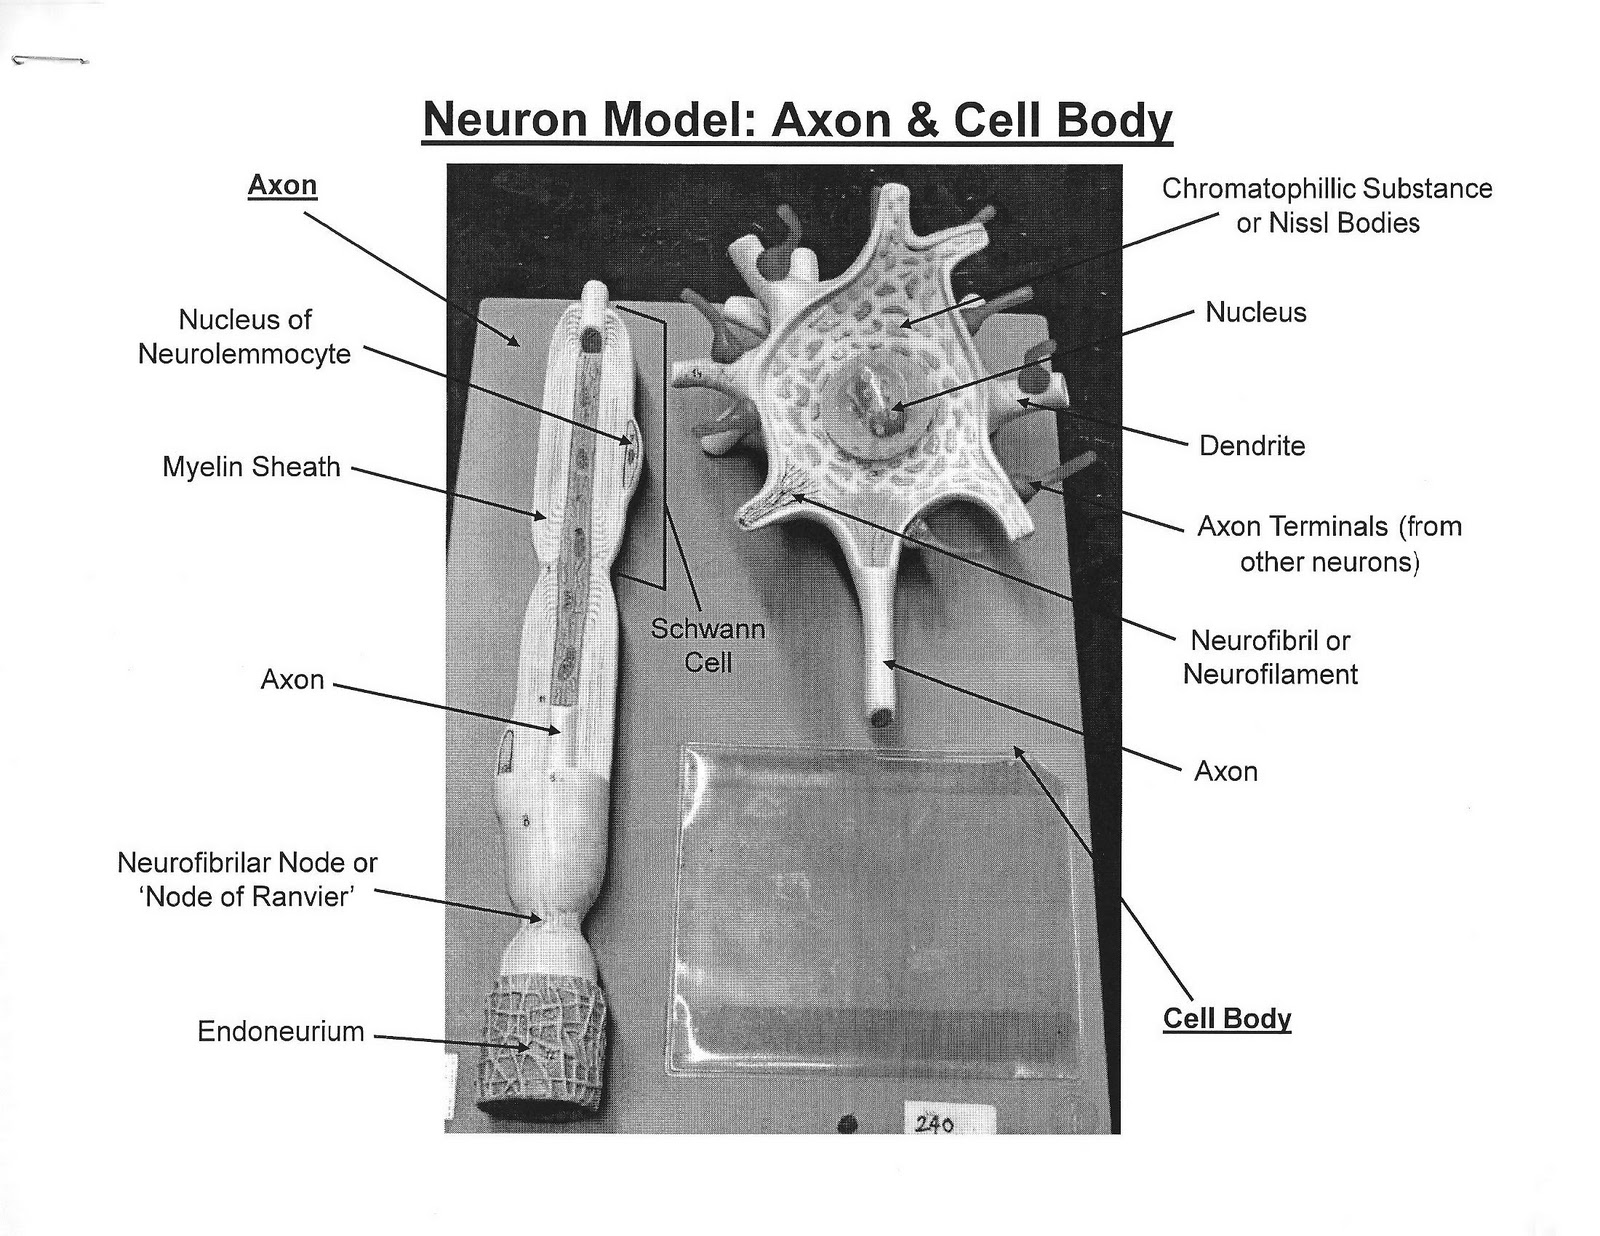 ANATOMY & PHYSIOLOGY I BIS 240: Neuron Model:Axon and Cell Body